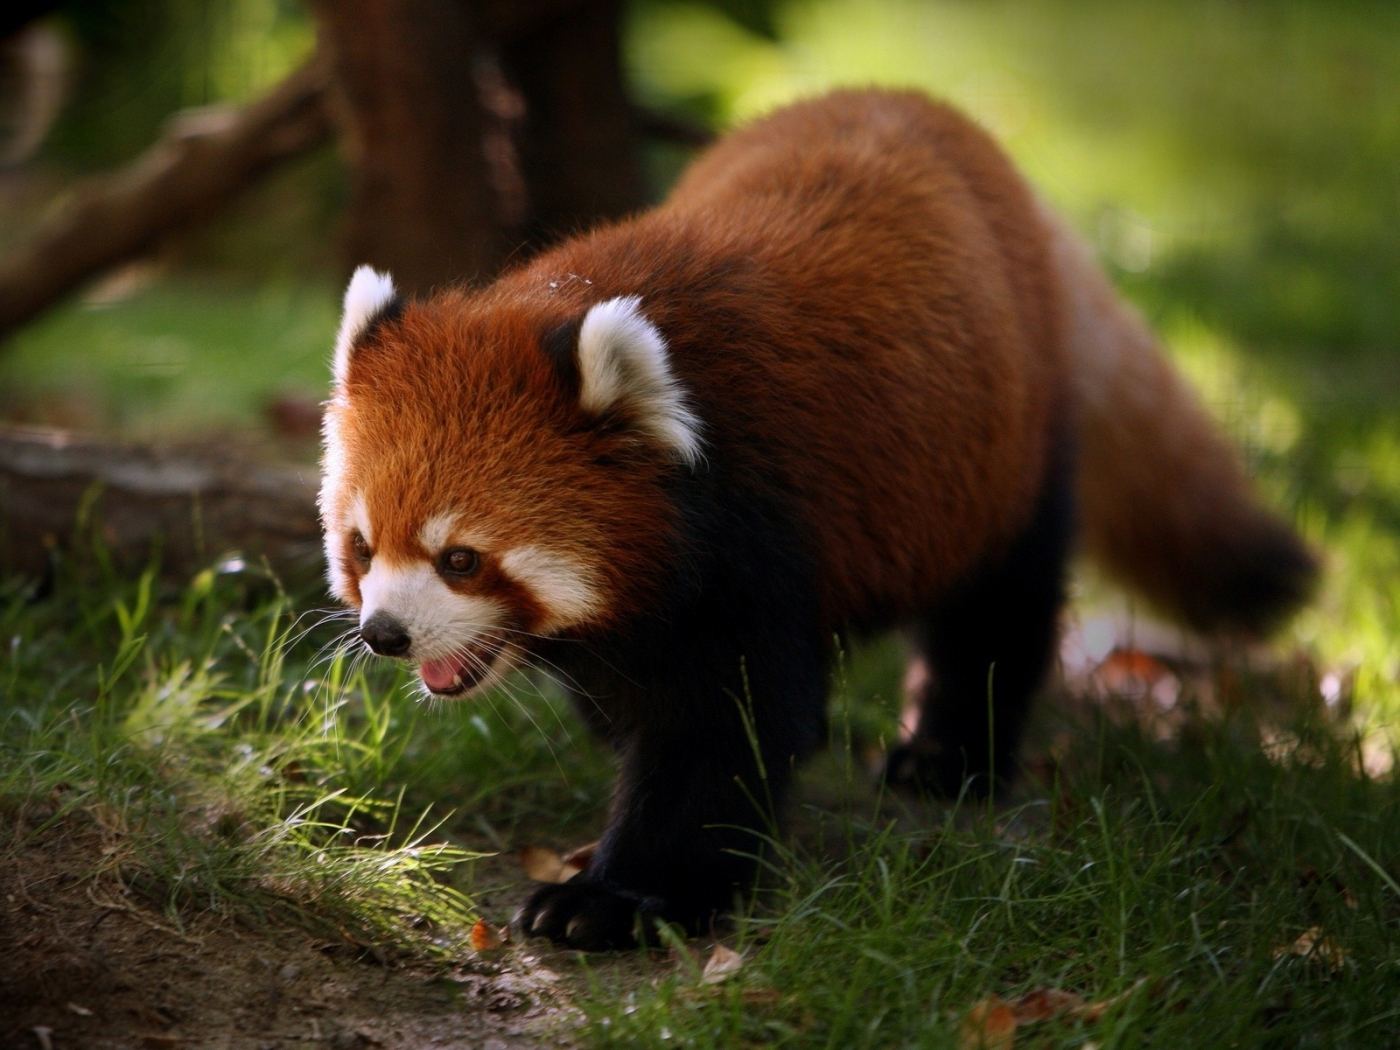 33088 download wallpaper Animals, Pandas screensavers and pictures for free